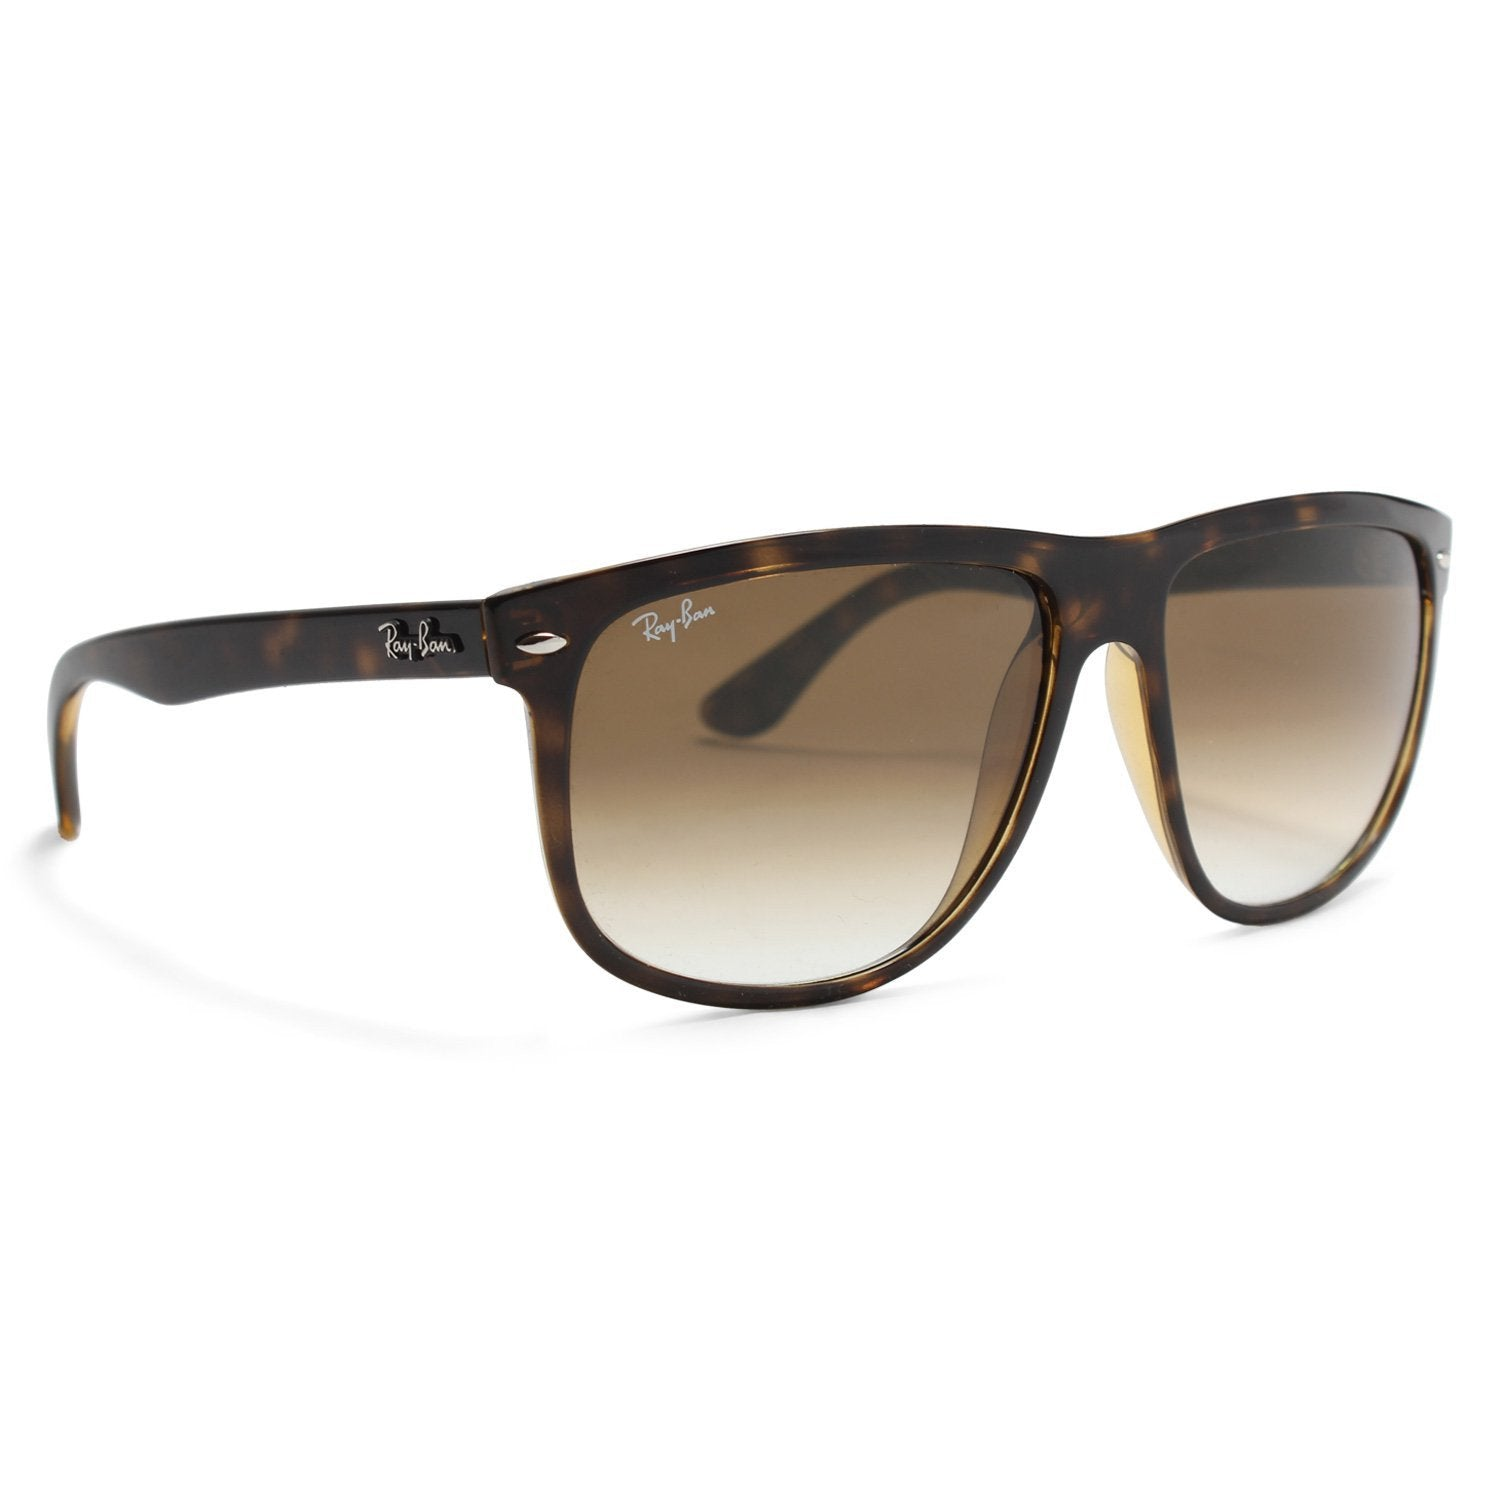 Boyfriend 60mm Rb4147 Sunglasses